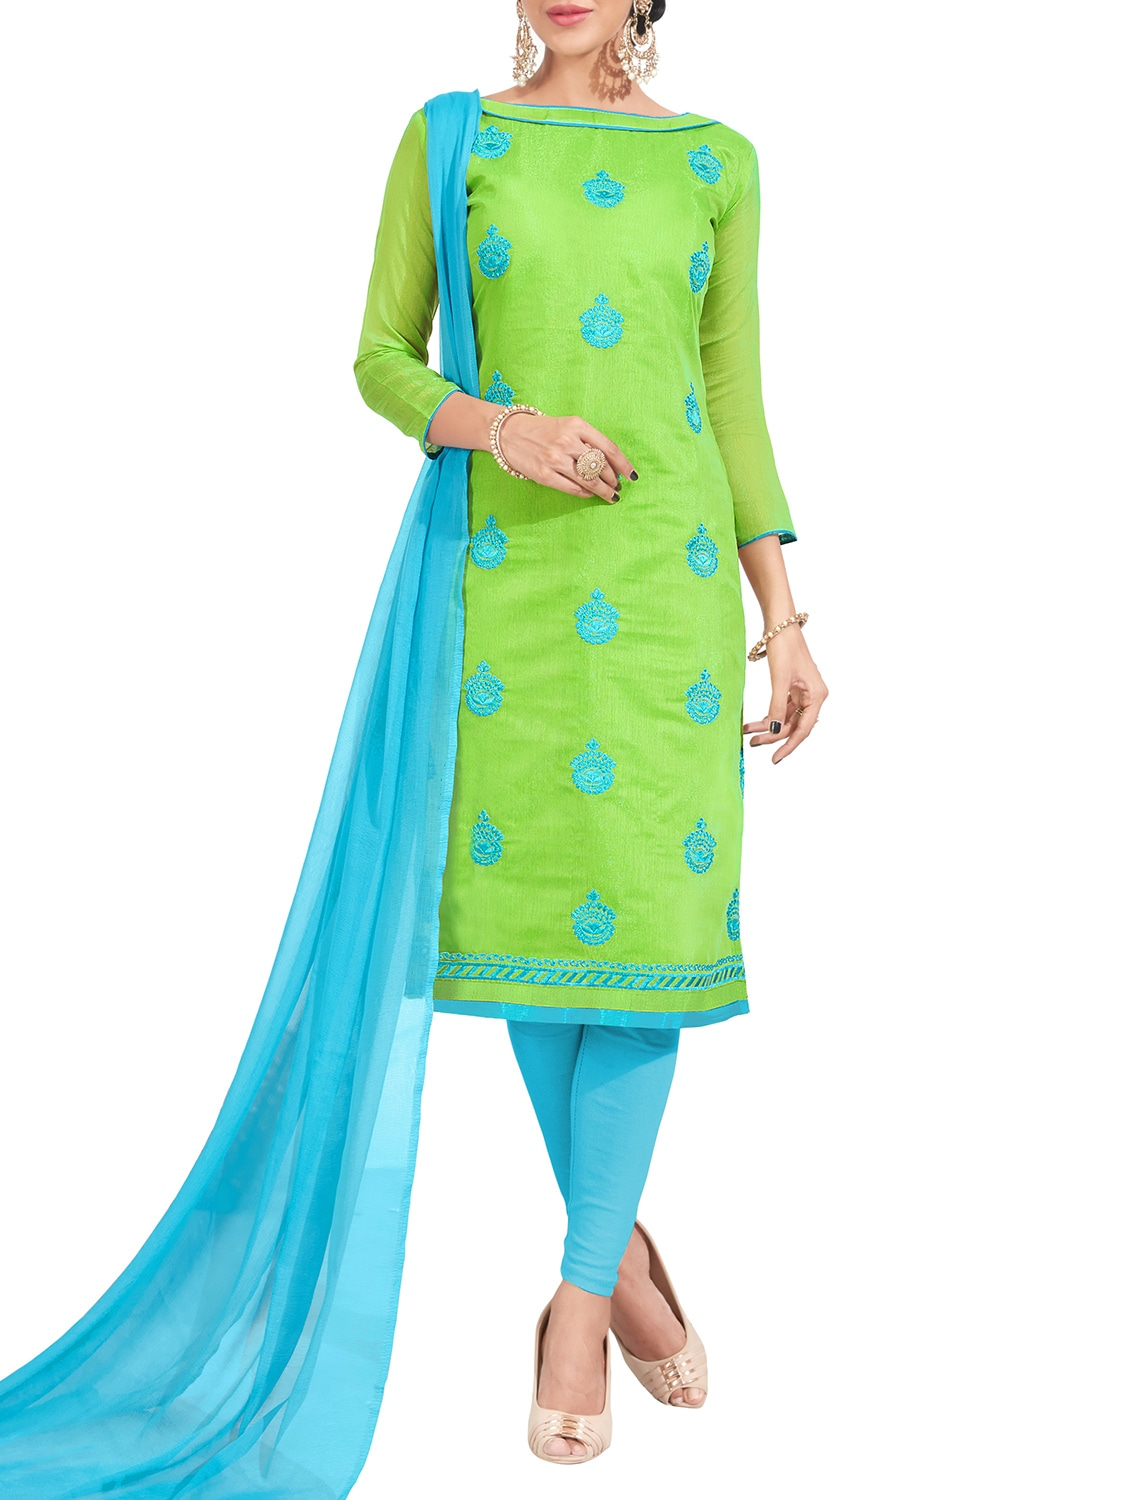 0f0122f158 ... green chanderi cotton churidaar suit dress material - 14631663 - Zoom  Image - 1